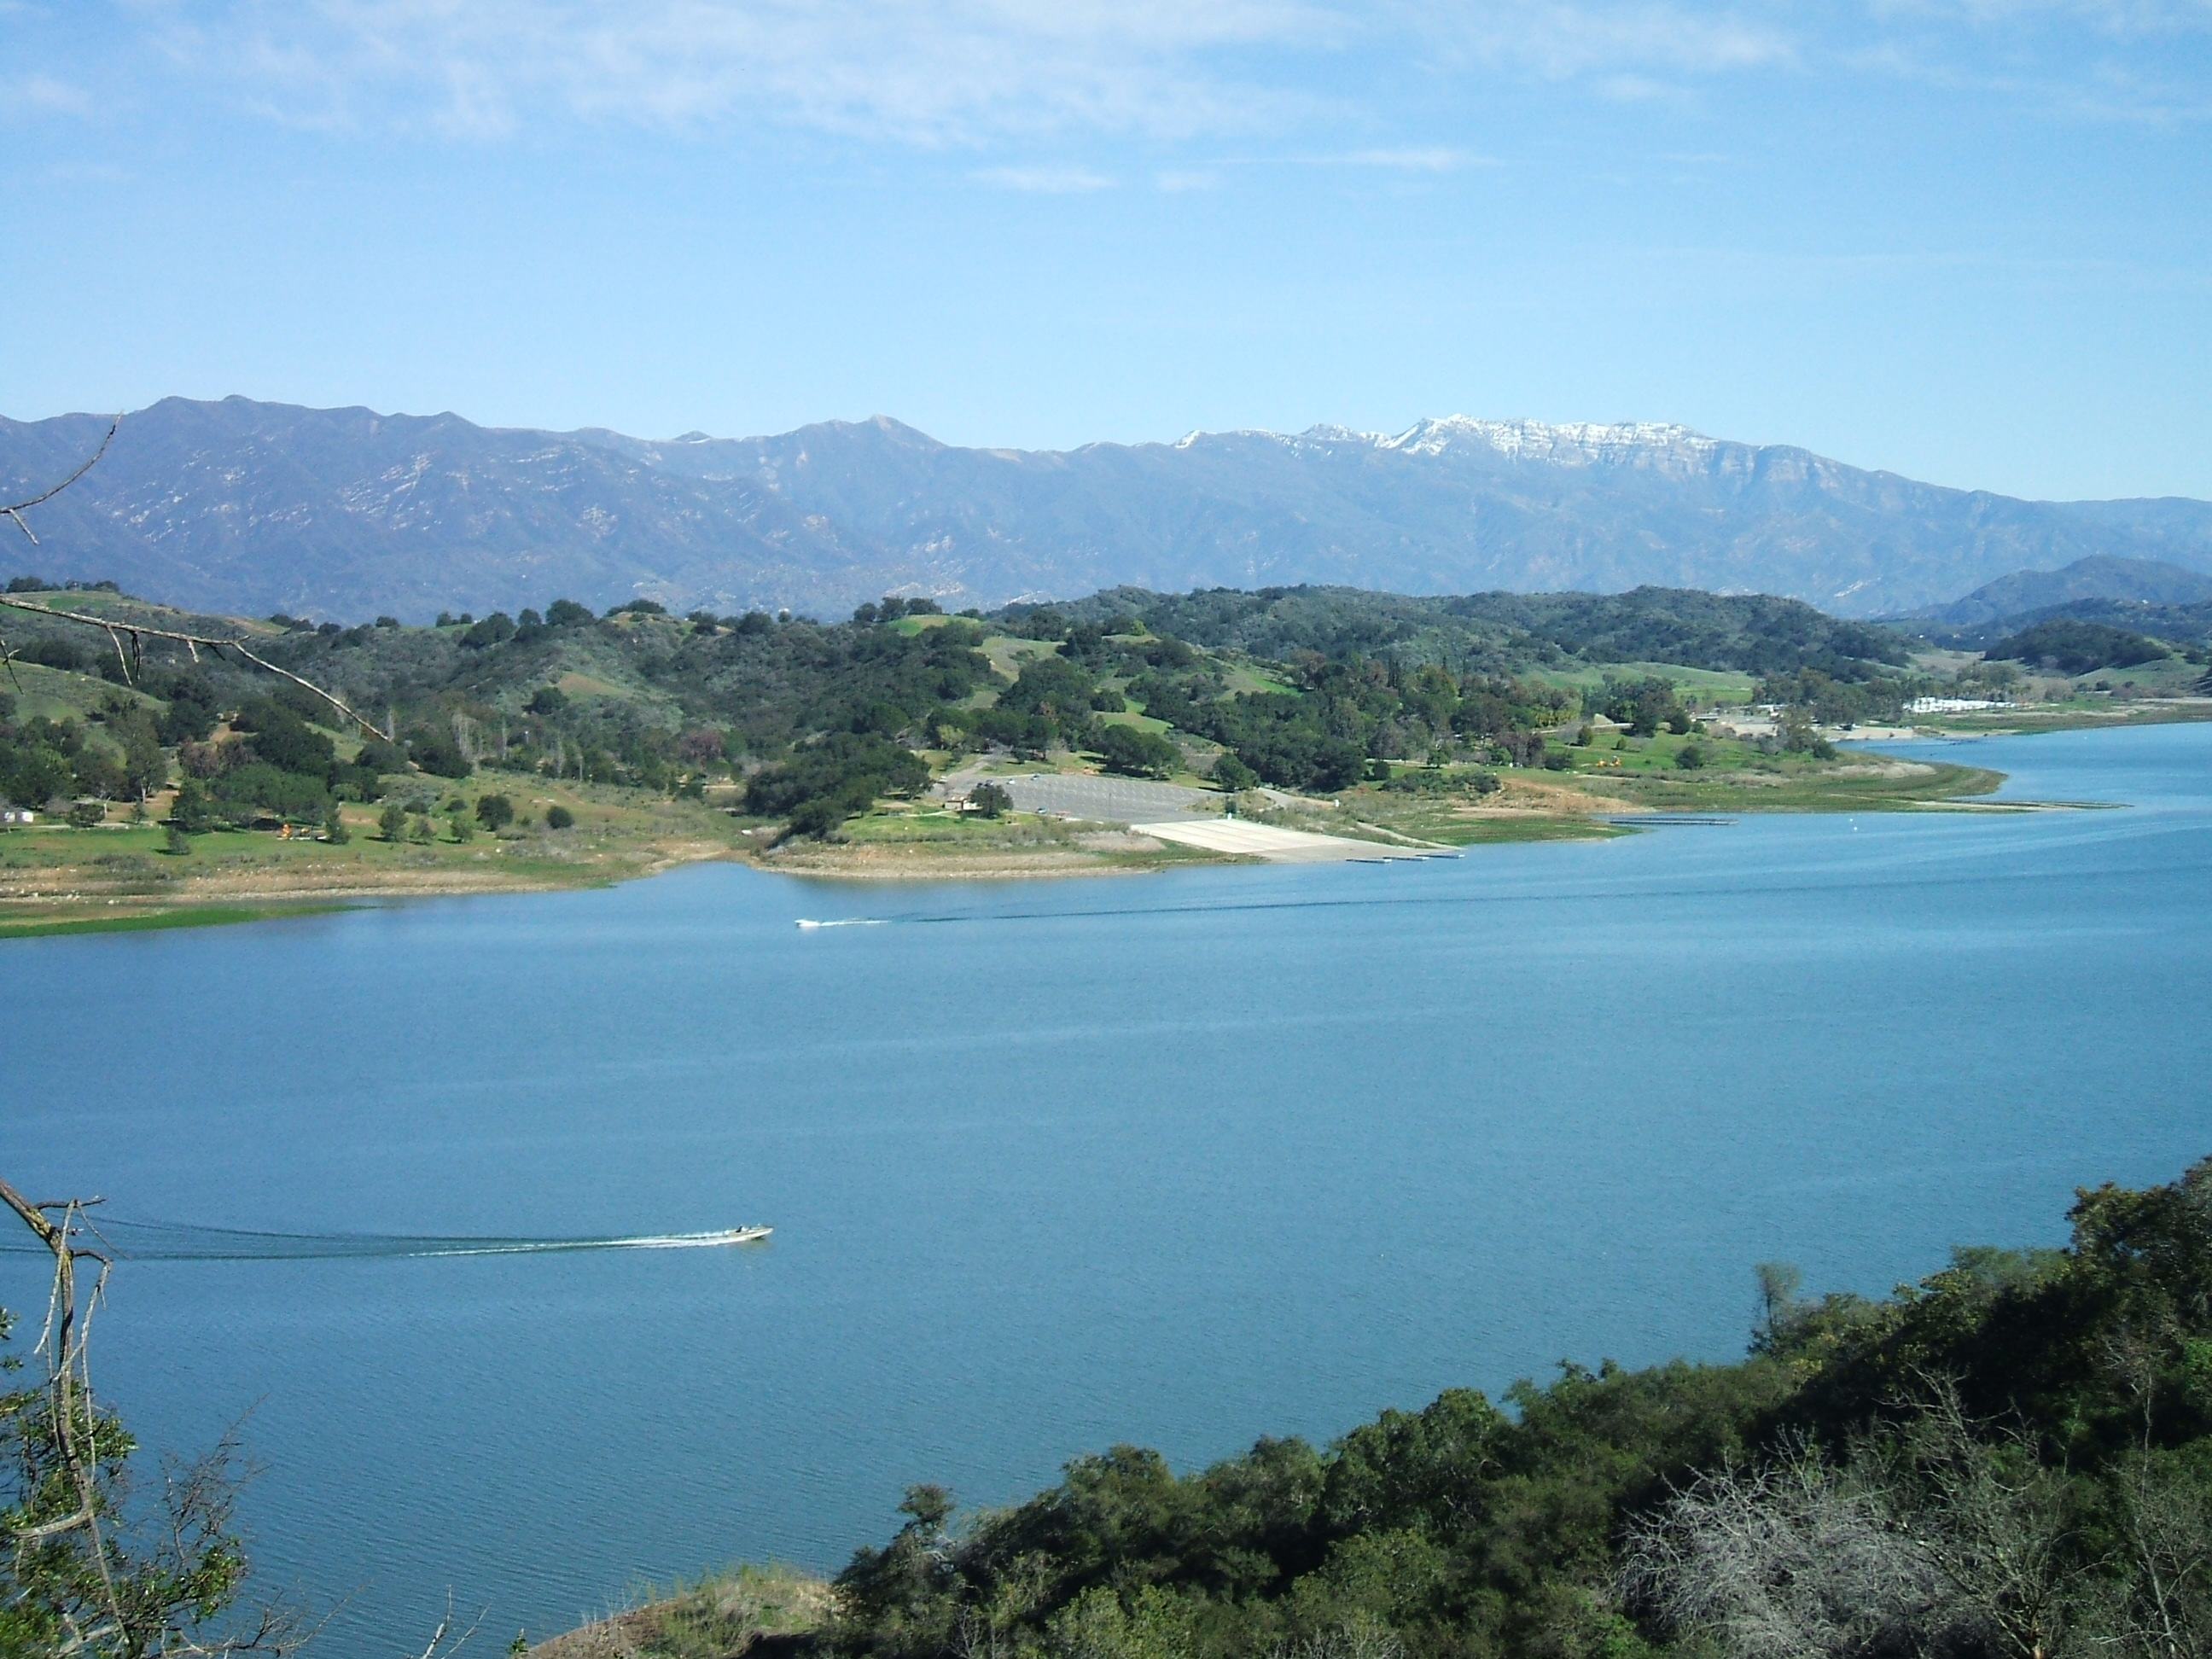 boating and fishing lake casitas recreation area